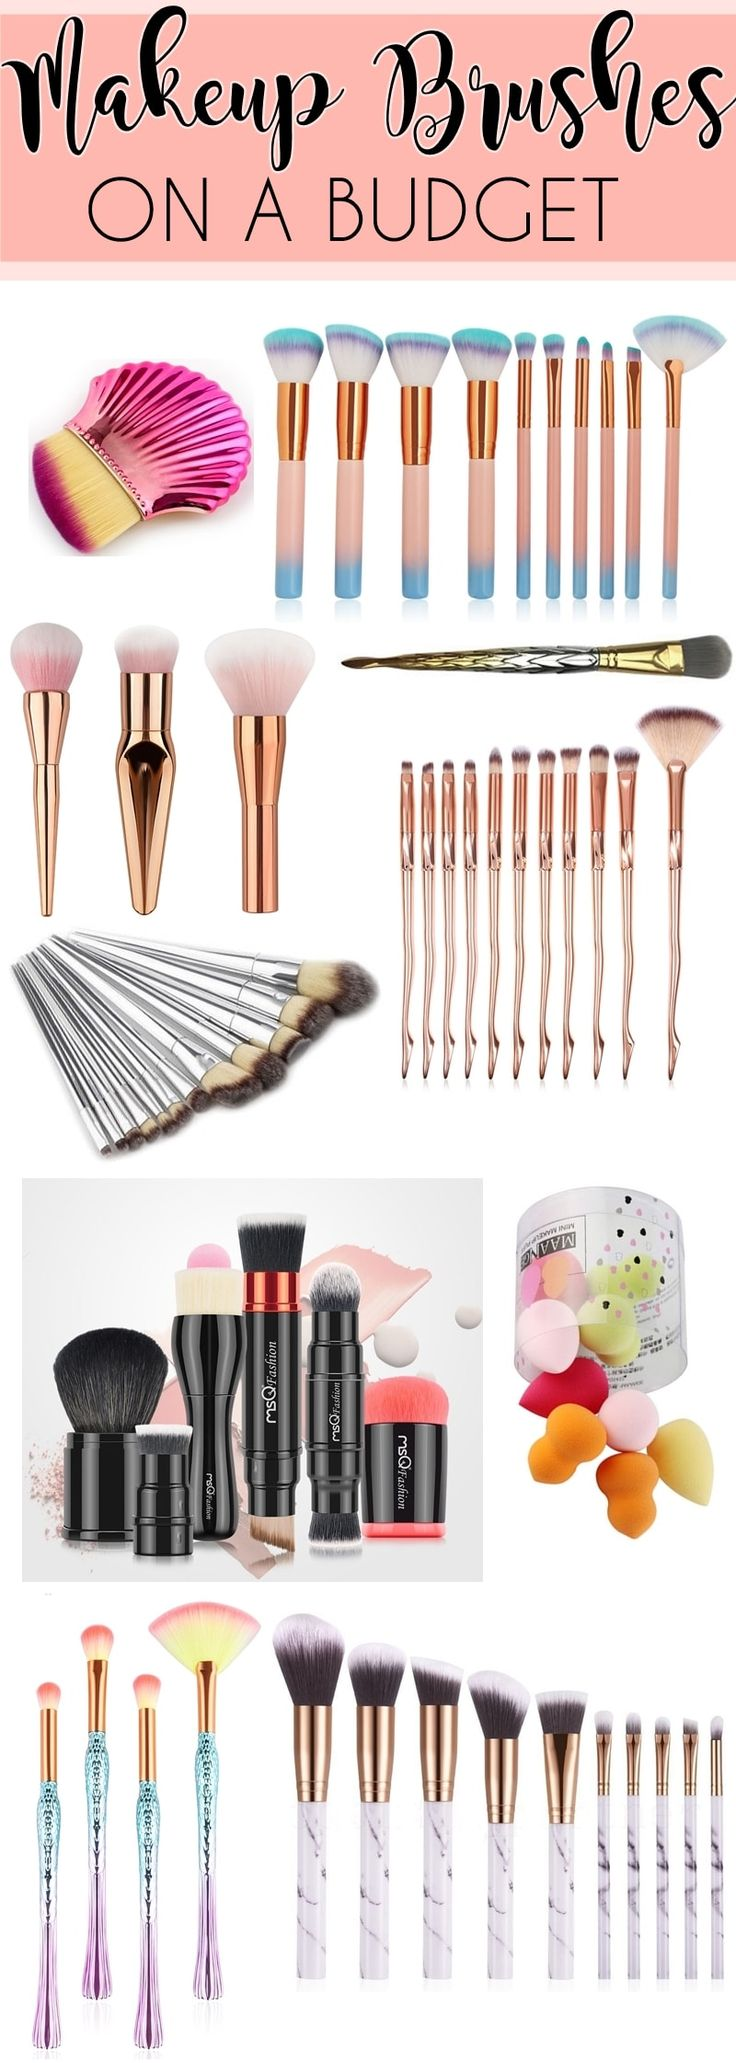 eBay Bargains Updated Budget Makeup Brushes Makeup